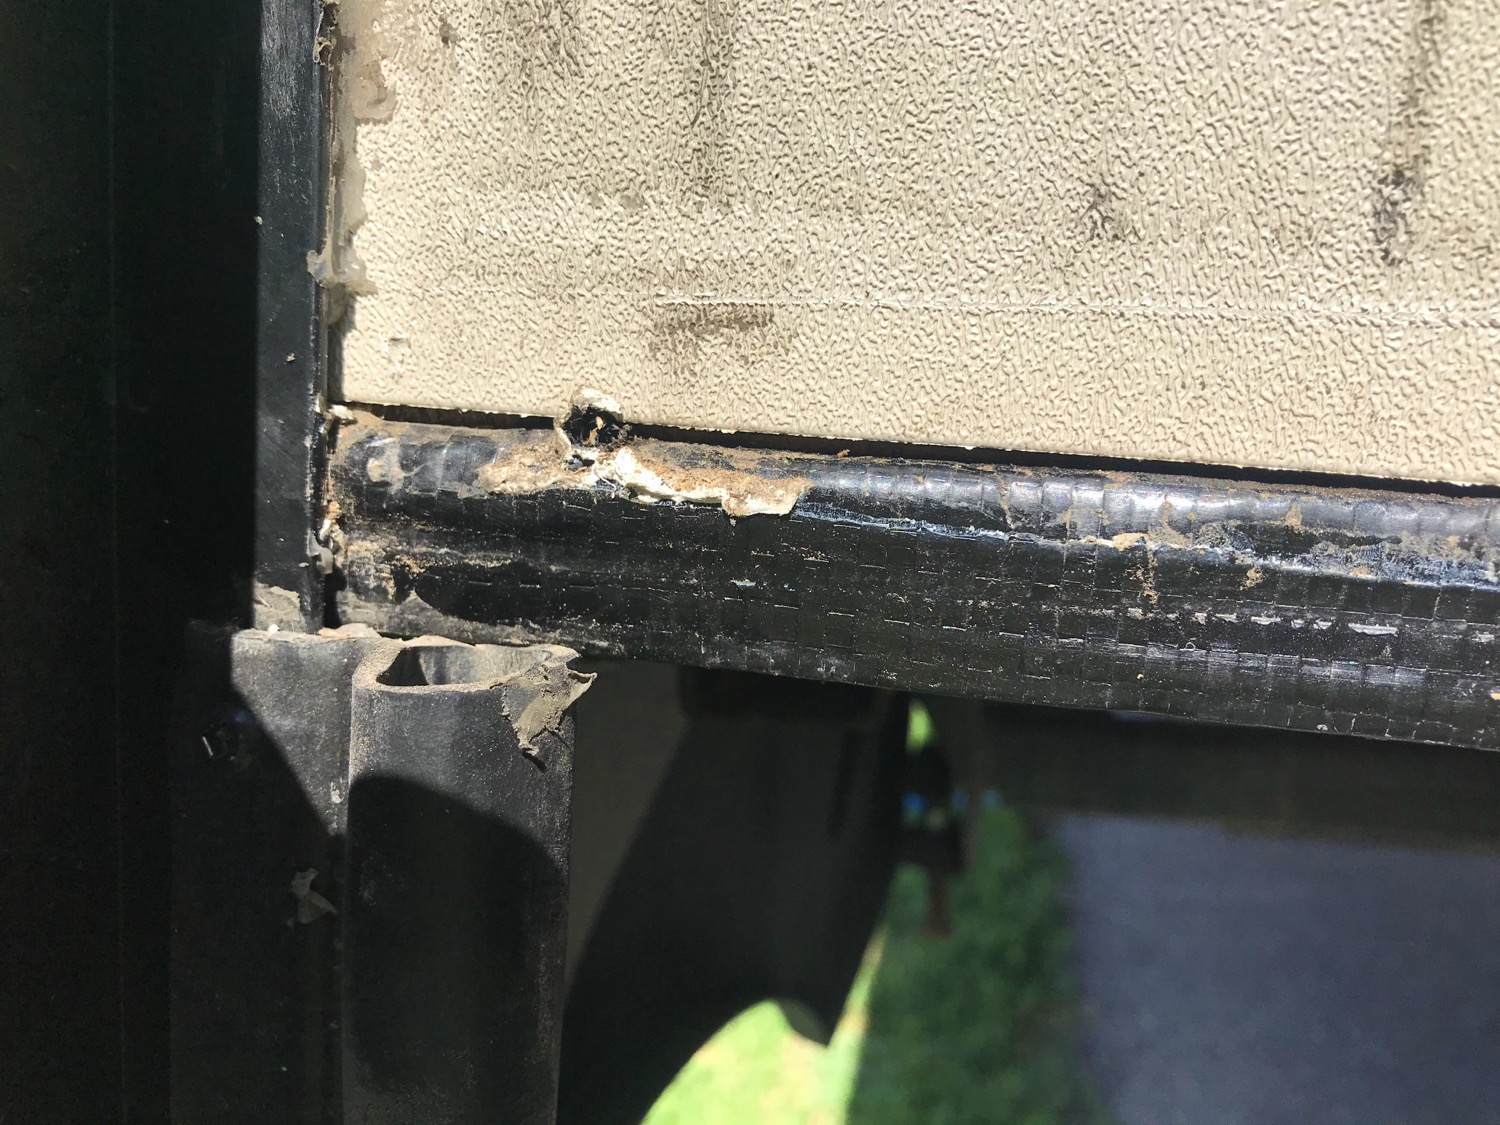 Found the problem - As usual and as everyone we run into with an RV says 'The build quality is not good on these.' I replaced all the buttl tape and resealed all the edges on the whole slide out.